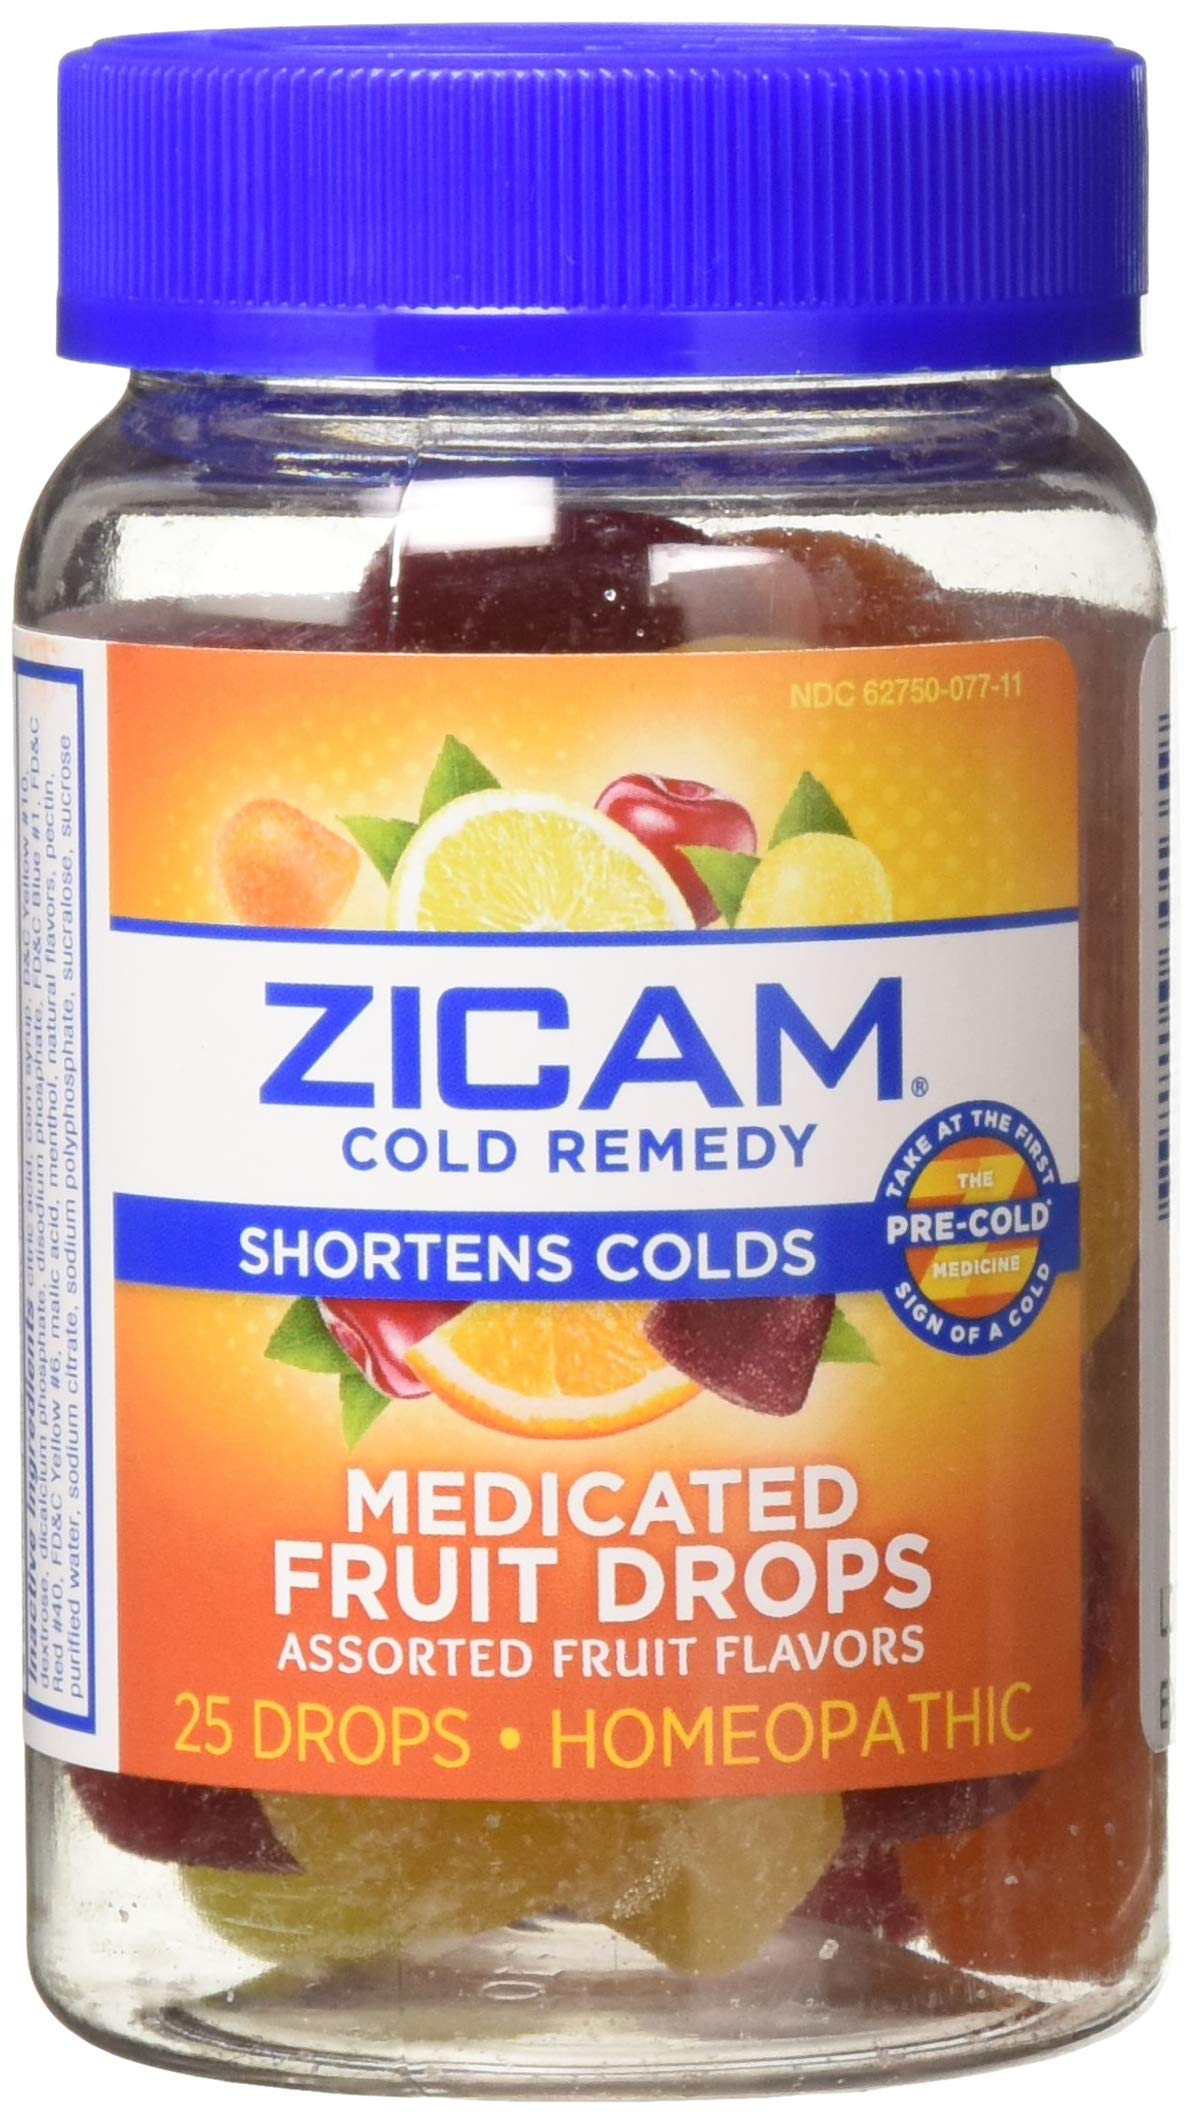 Zicam Cold Remedy Medicated Fruit Drops, Assorted Fruit, 25 Drops (Pack of 2) Homeopathic Cold Remedy, Clinically Proven to Shorten Colds When Taken at The First Sign of Symptoms by Zicam